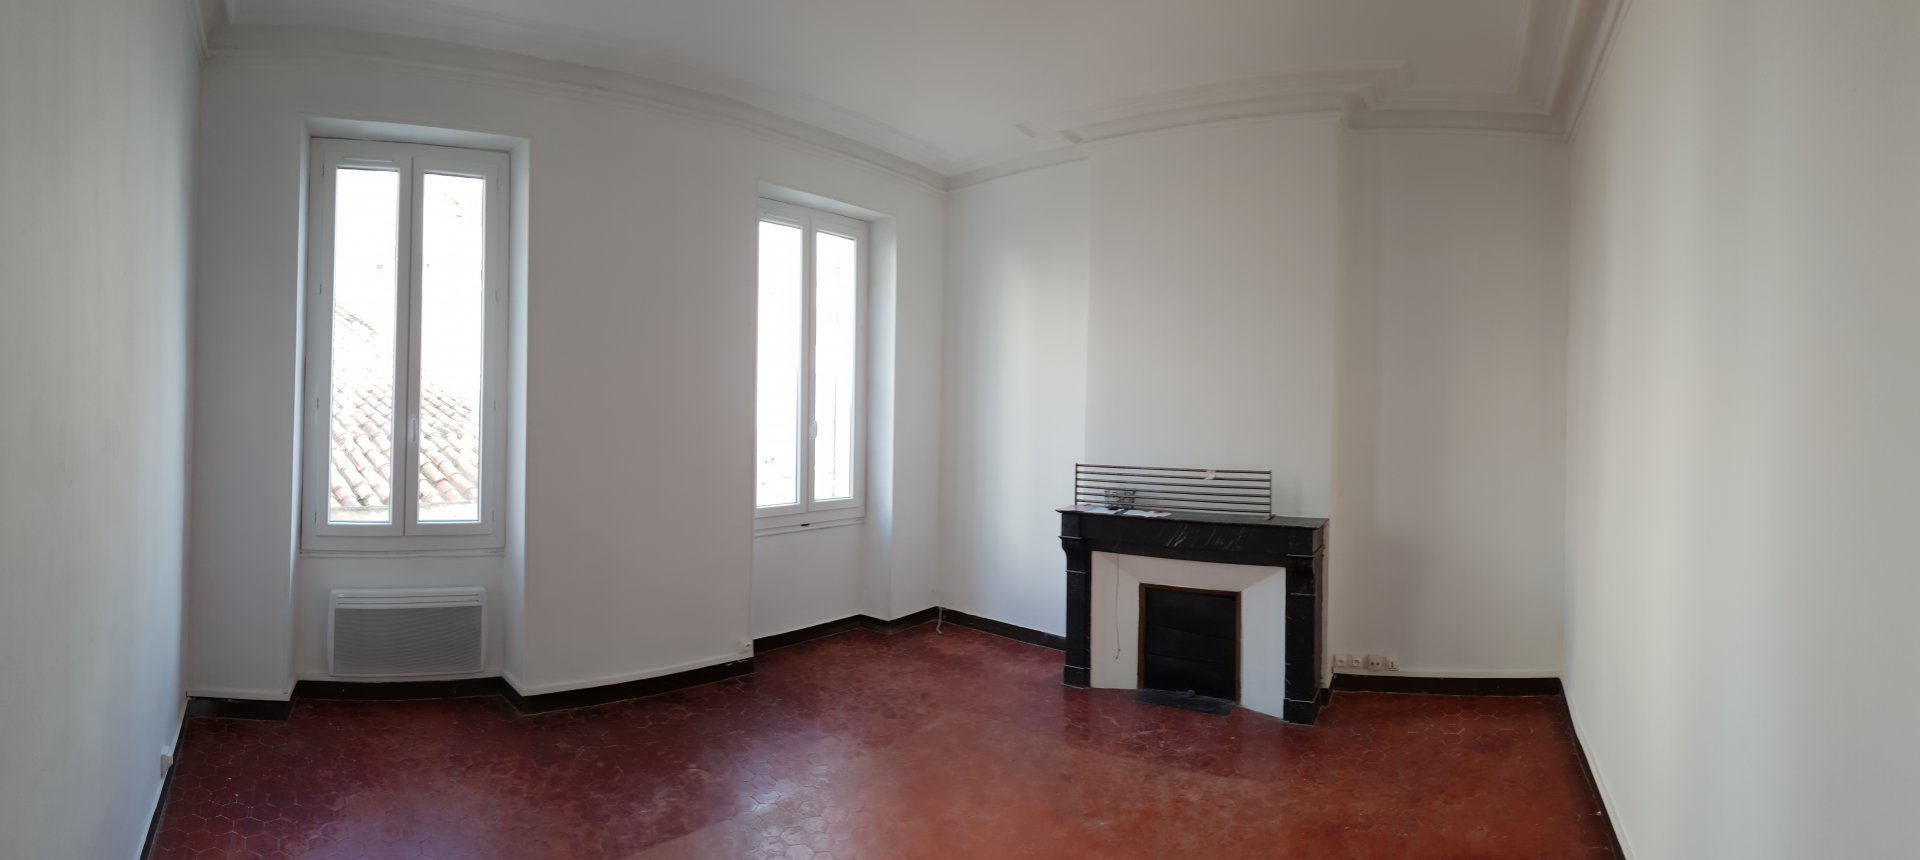 Location Appartement - Marseille 1er